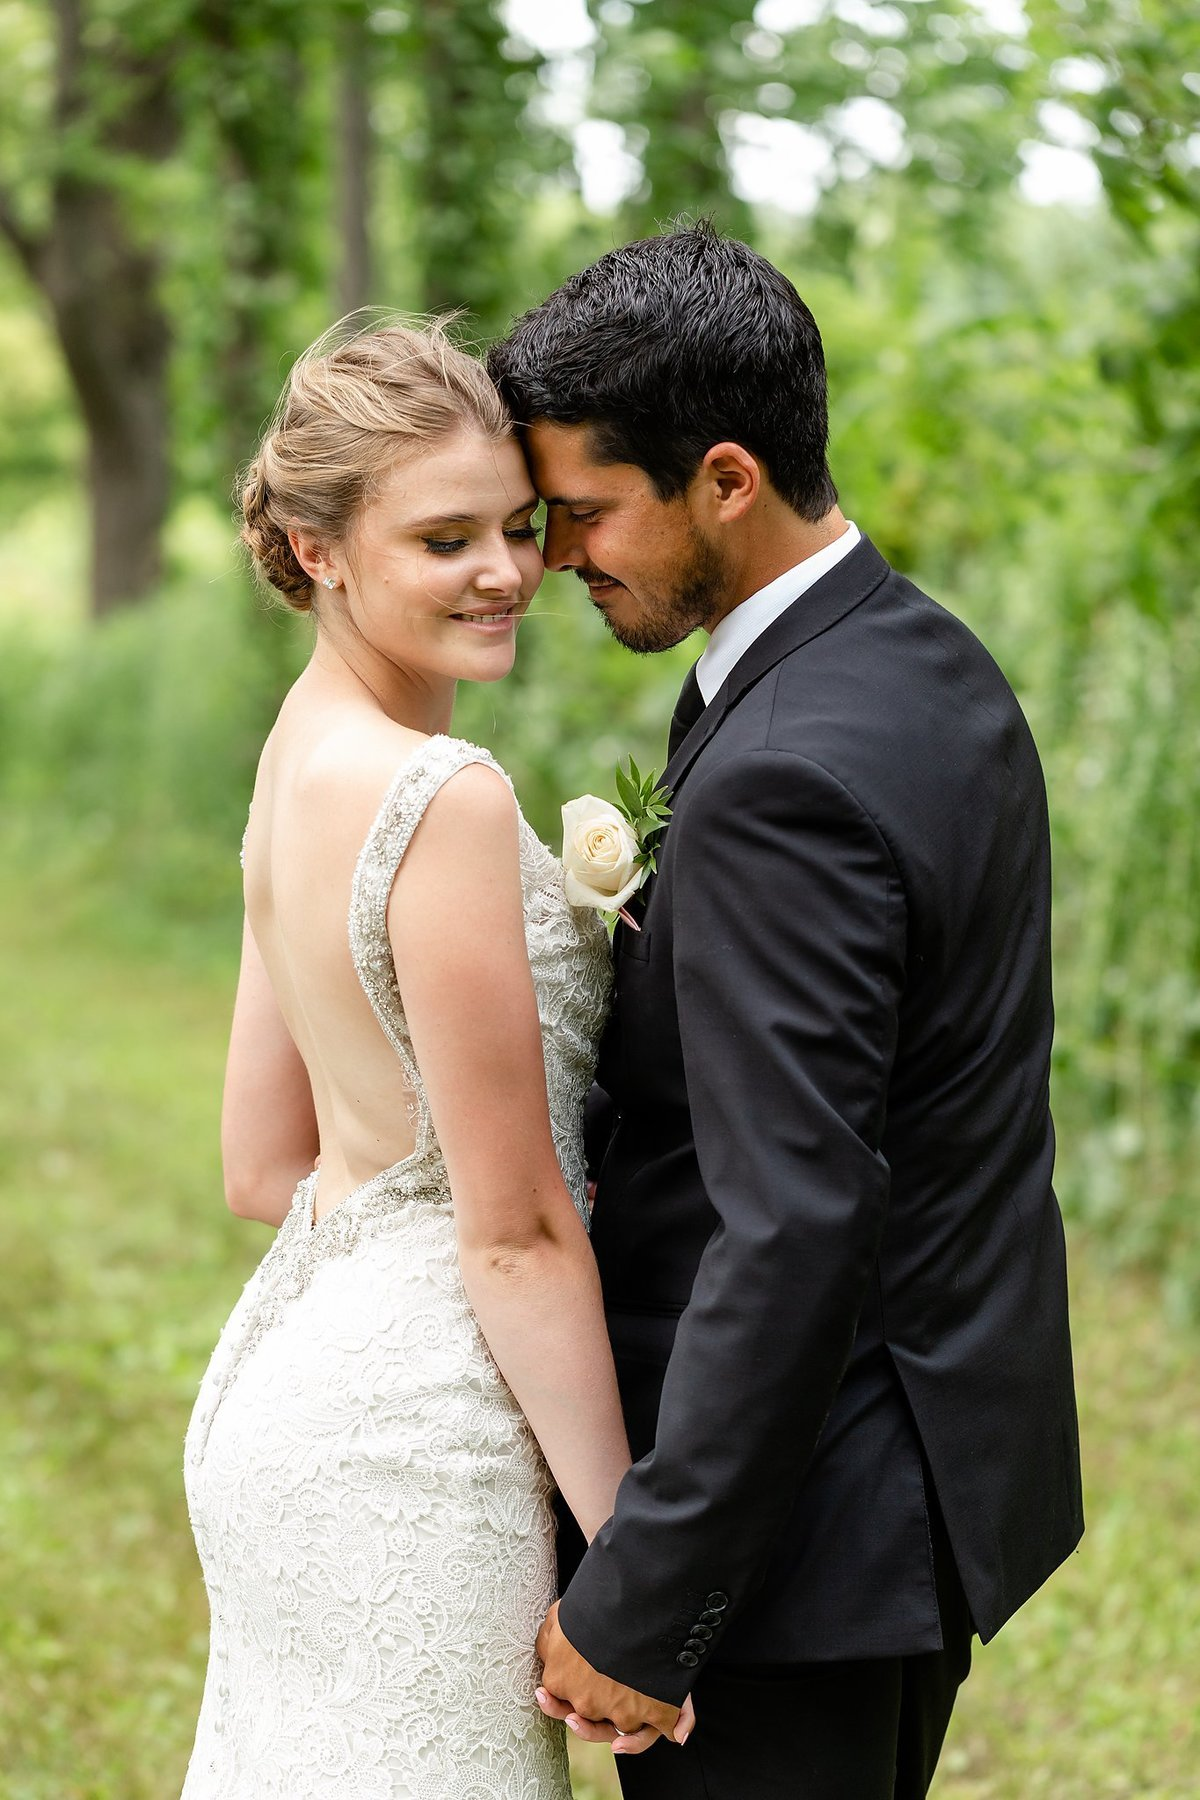 Southwestern Ontario Summer Farm Wedding | Dylan and Sandra Photography 197